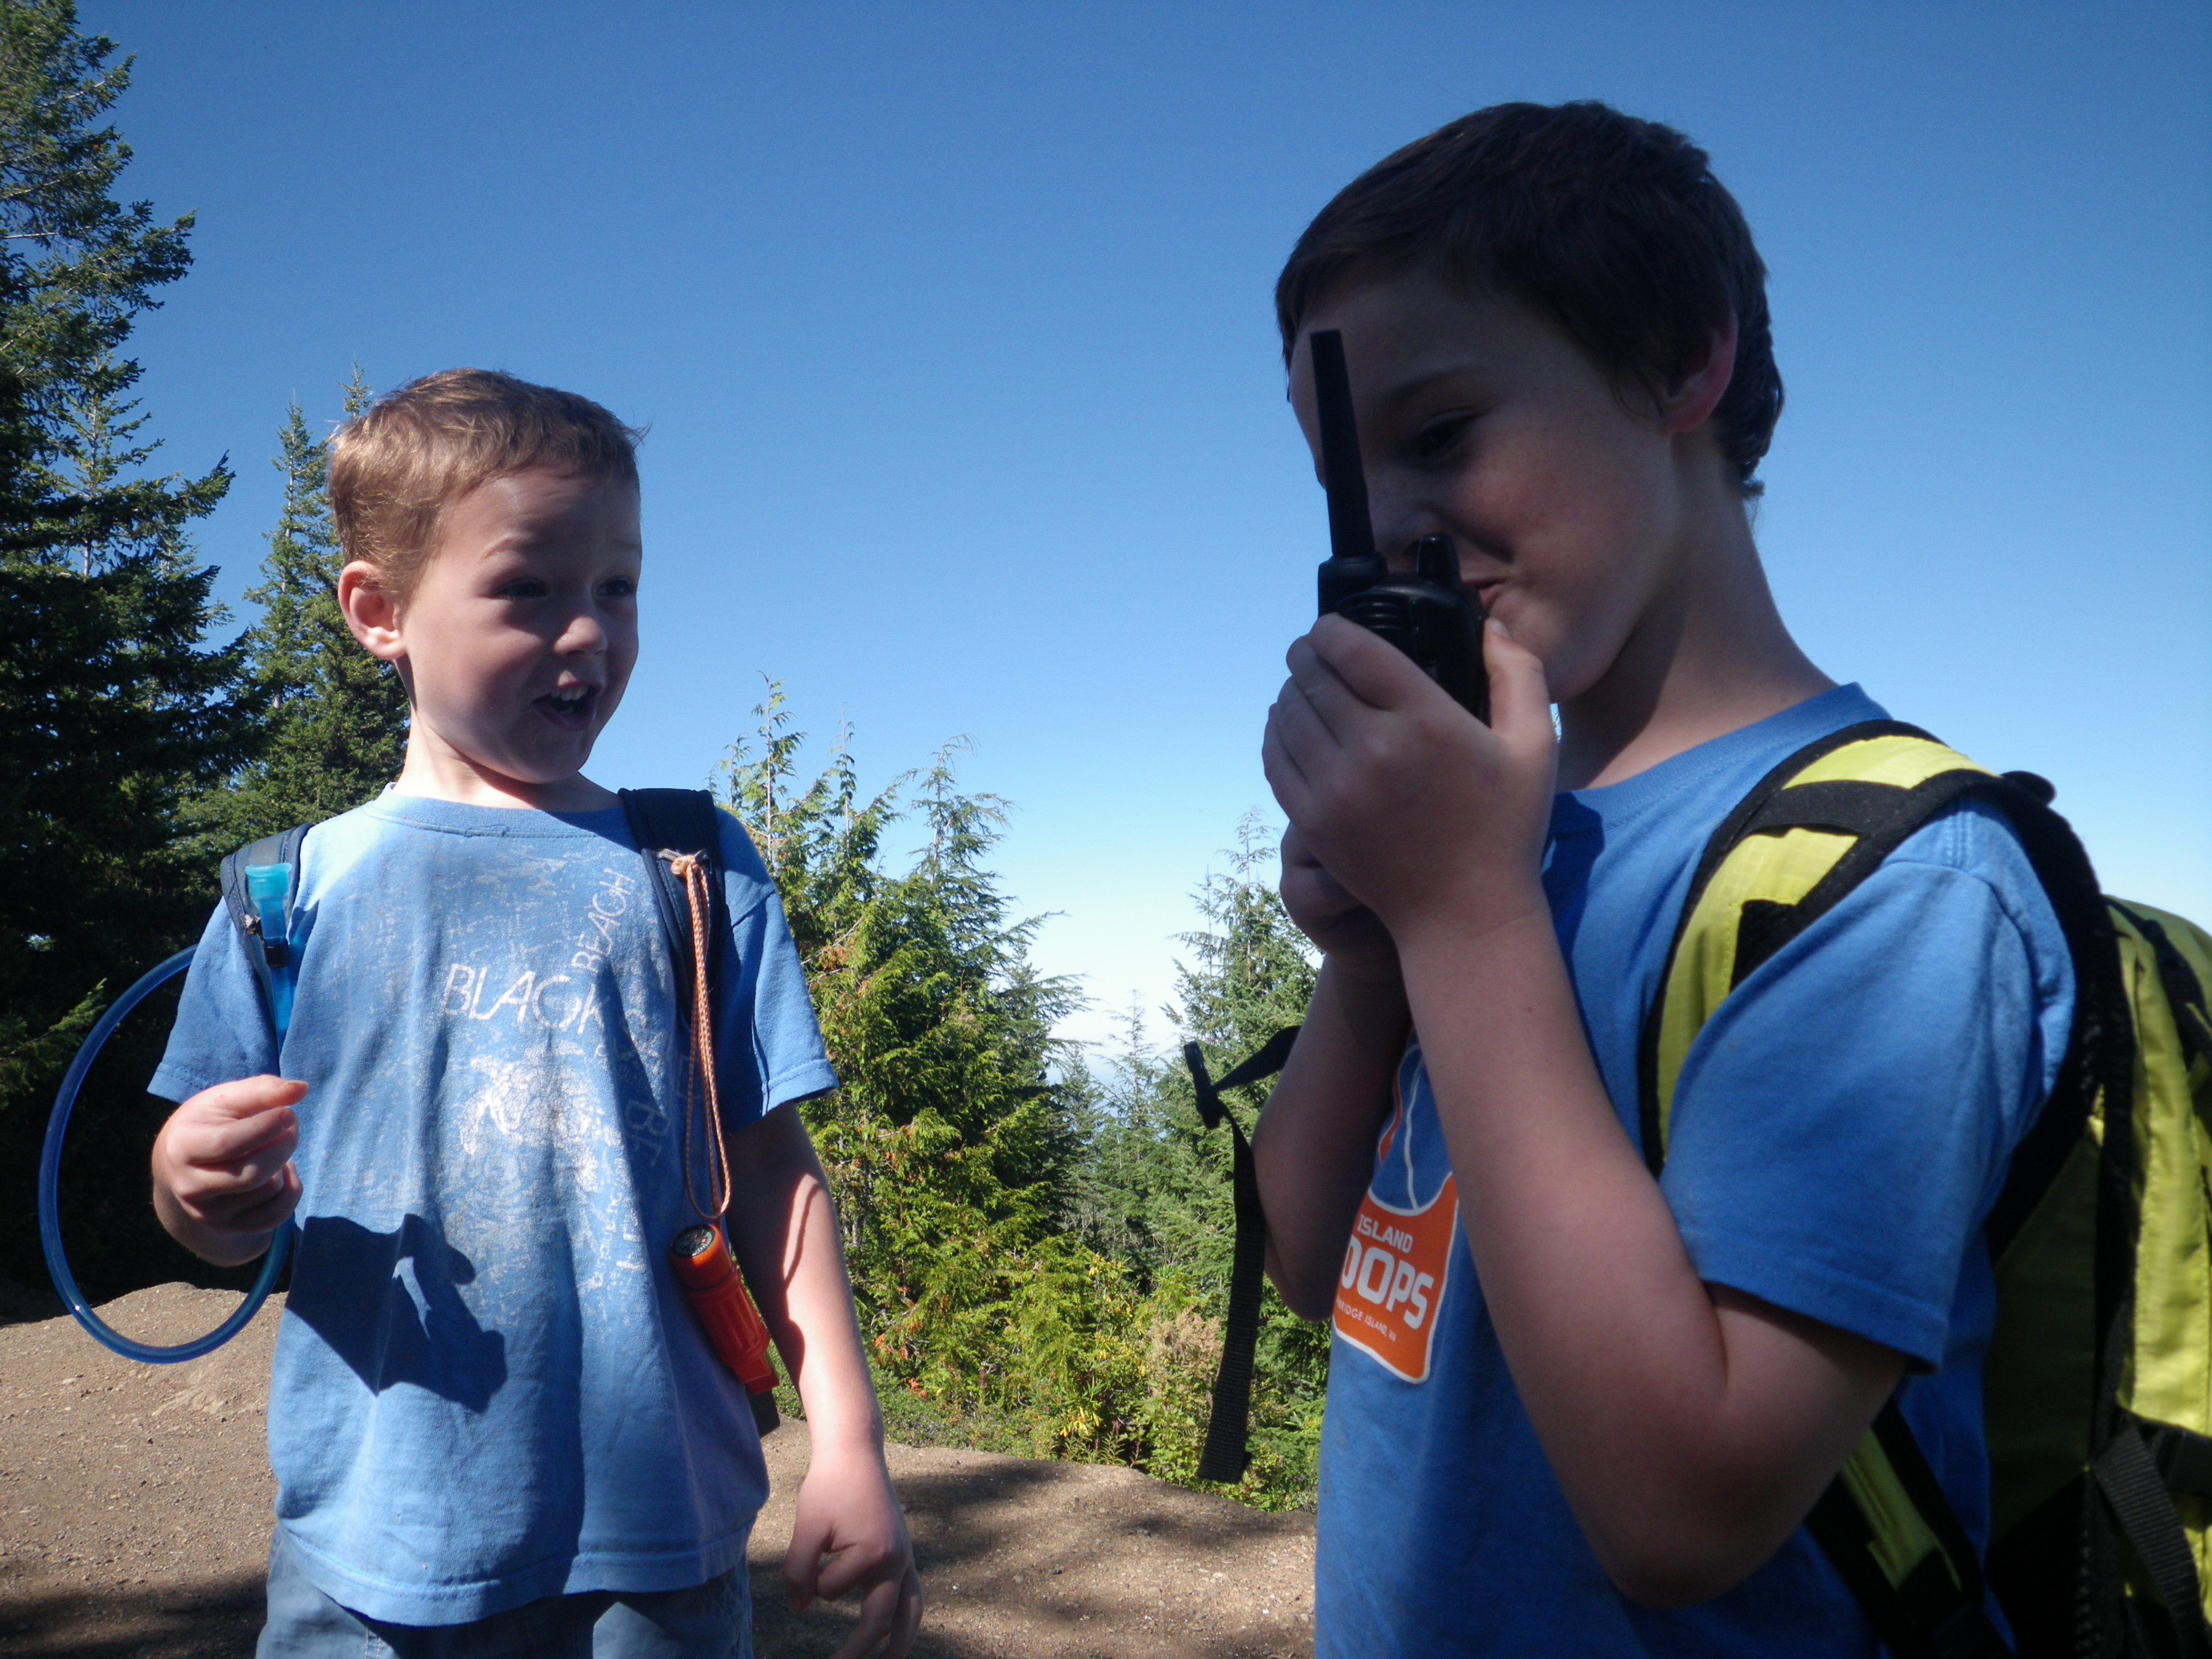 Having fun with walkie talkies!